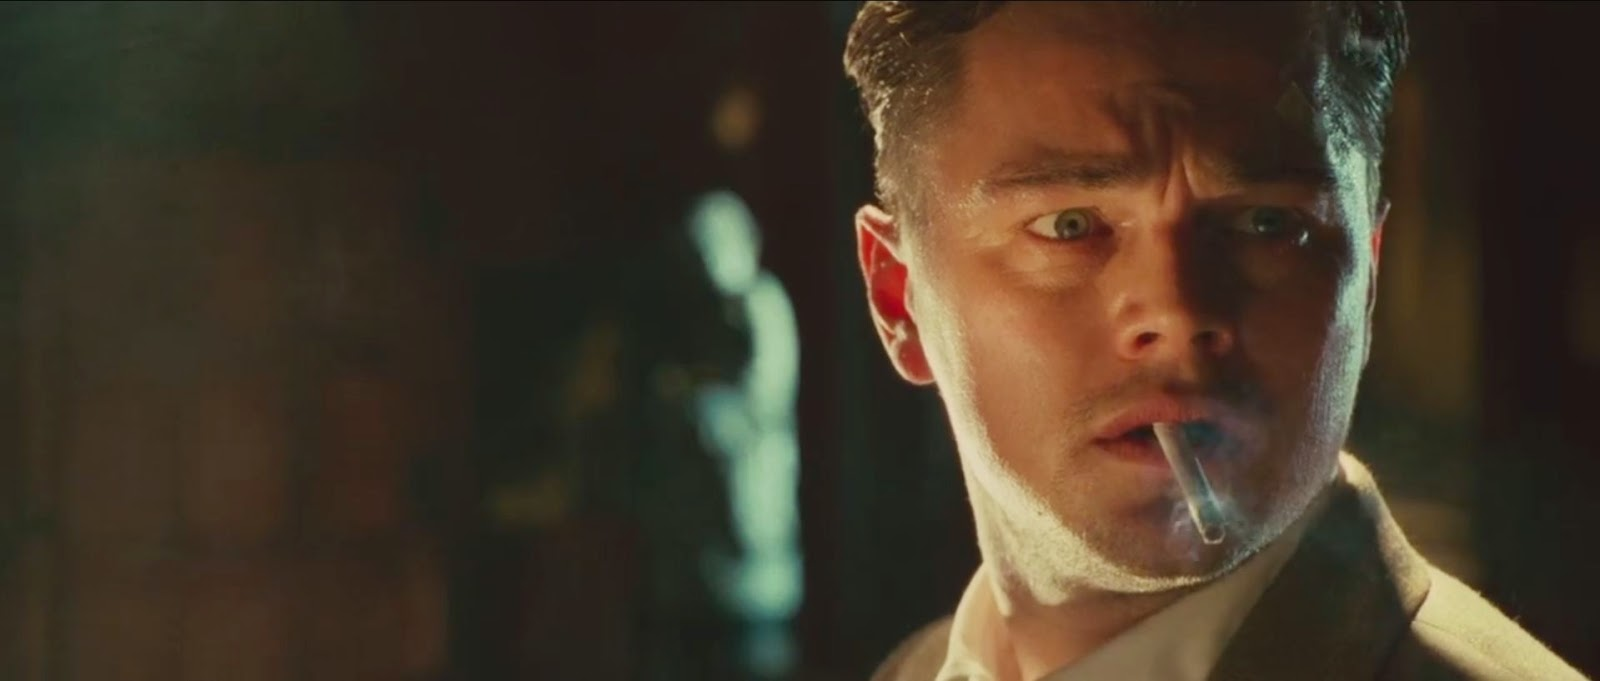 shutter island analysis op 5 Shutter island analysis posted on may 5, 2014 by ryanstill leave a comment shutter island draws on elements of psychological thriller and film noir, scorsese said that he wanted to inhabit many more genres within the film than a simple horror/thriller.